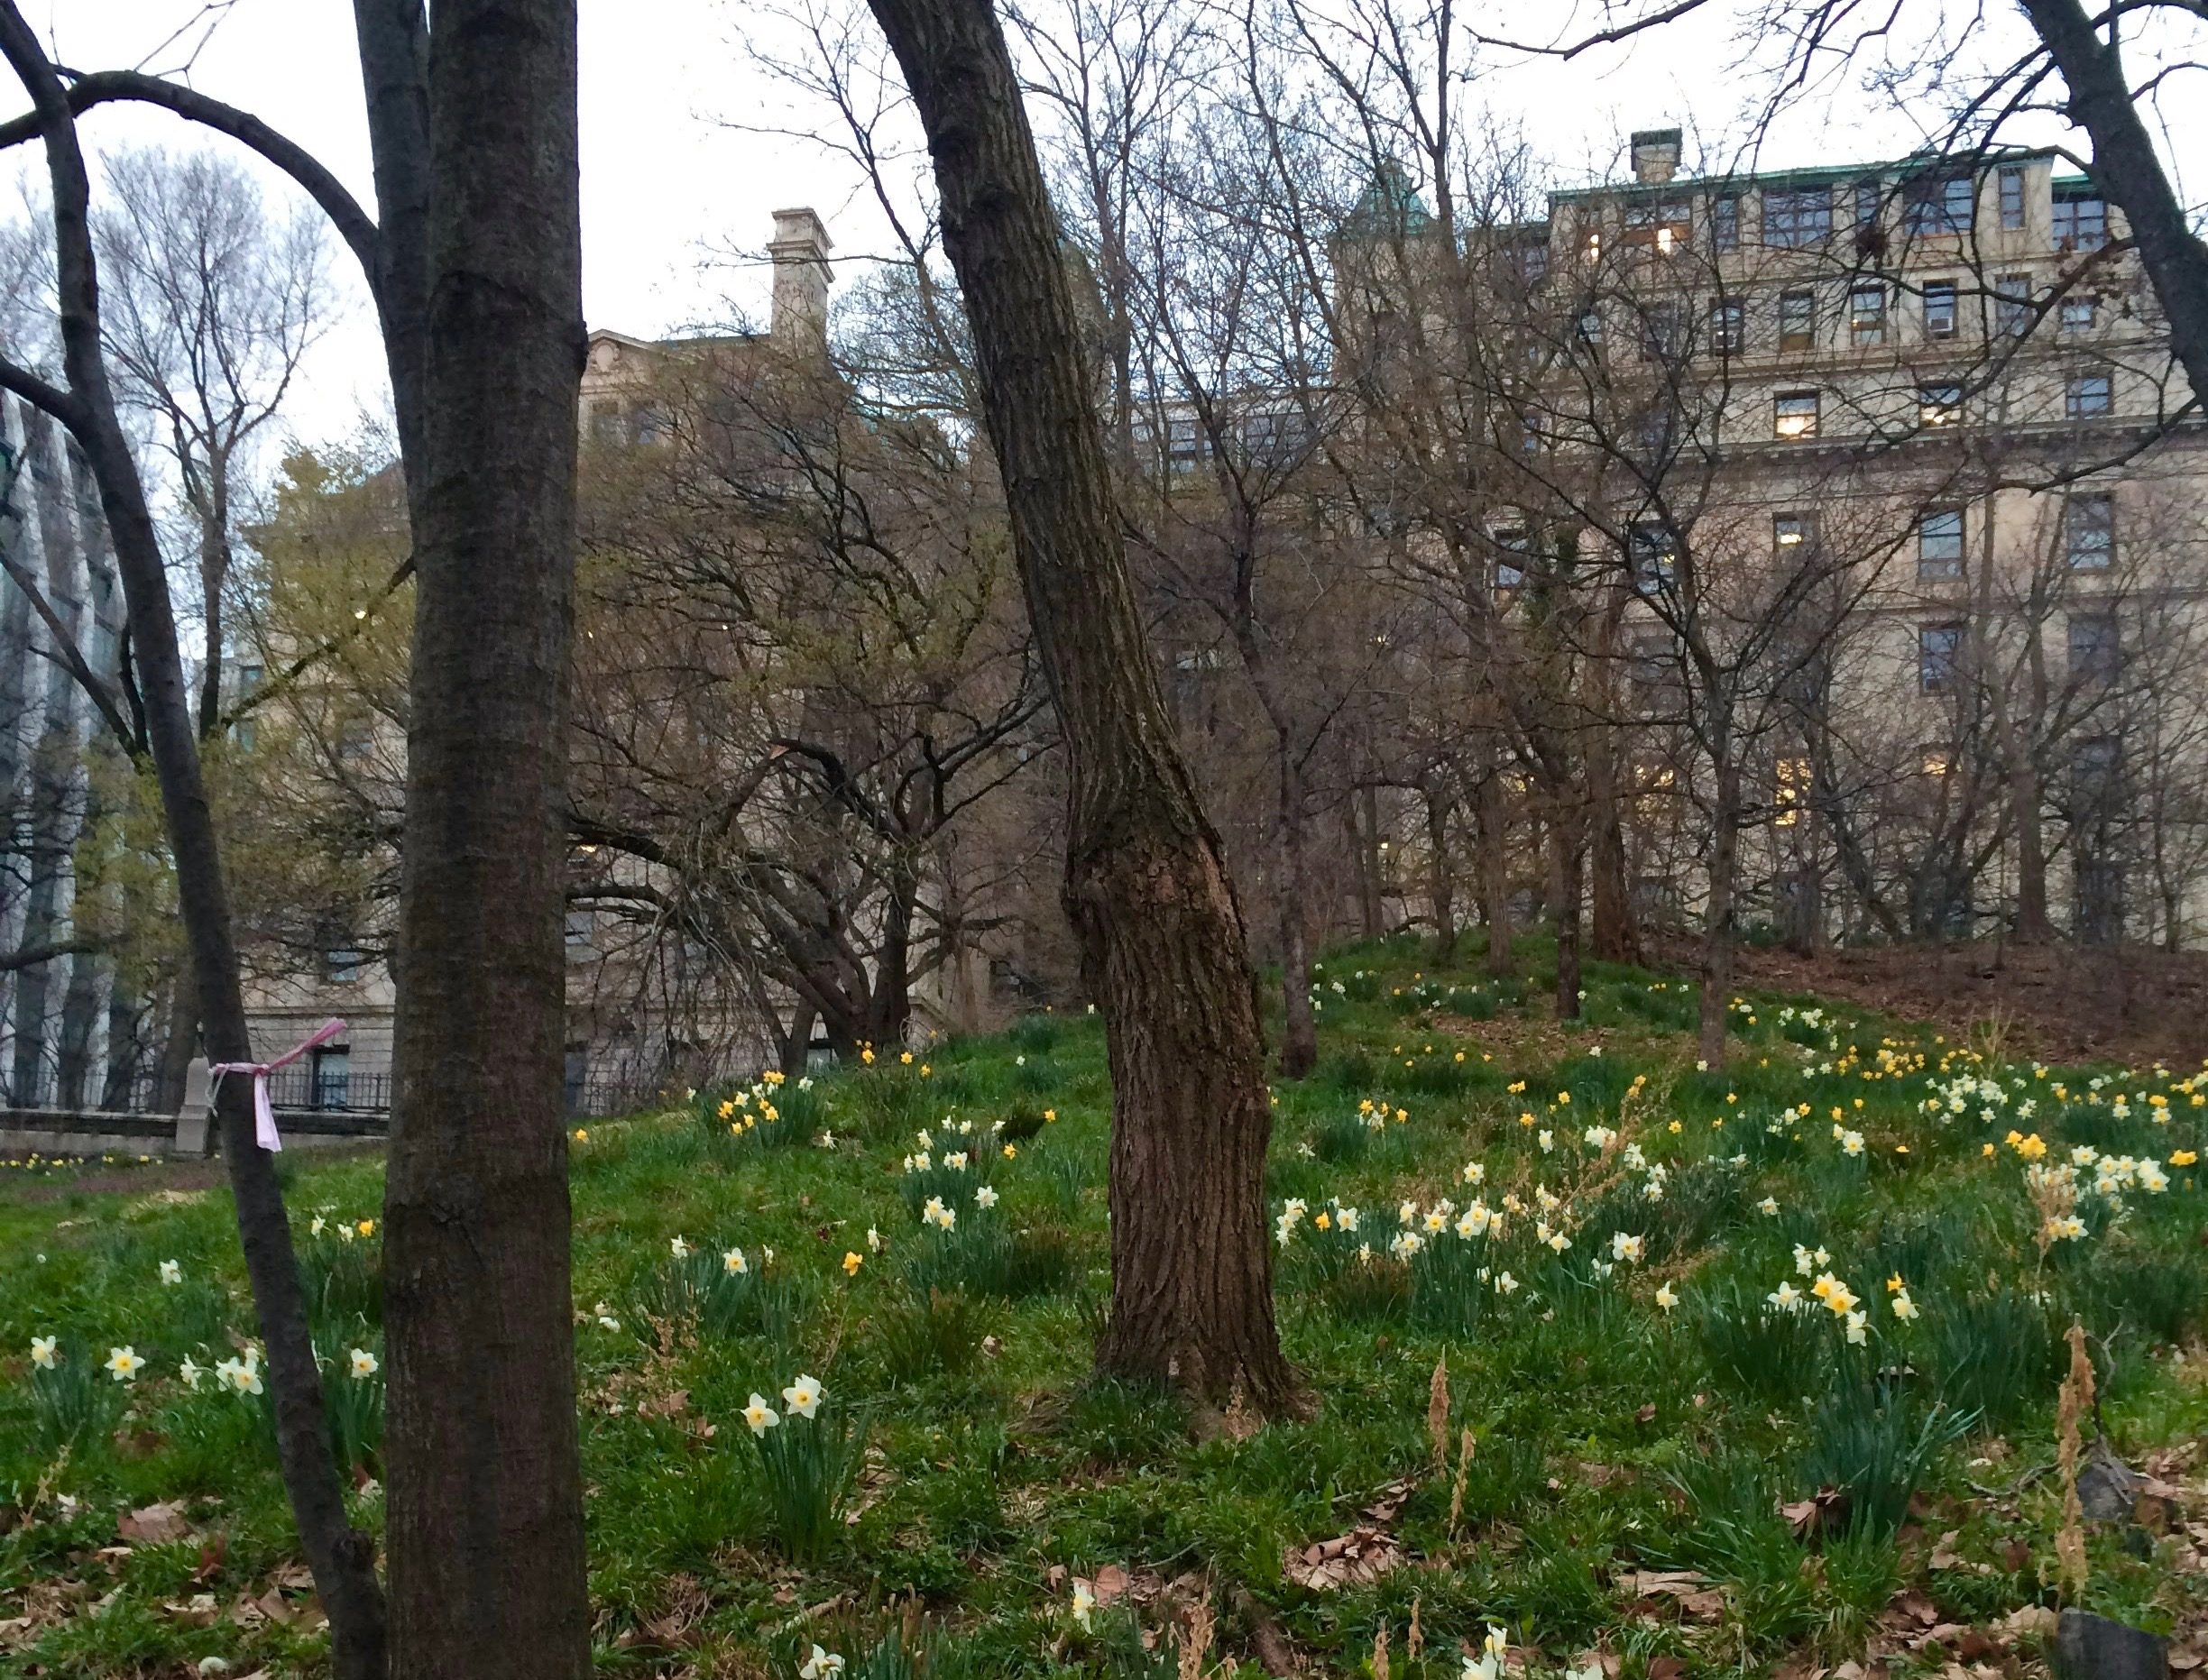 Spring in New York City